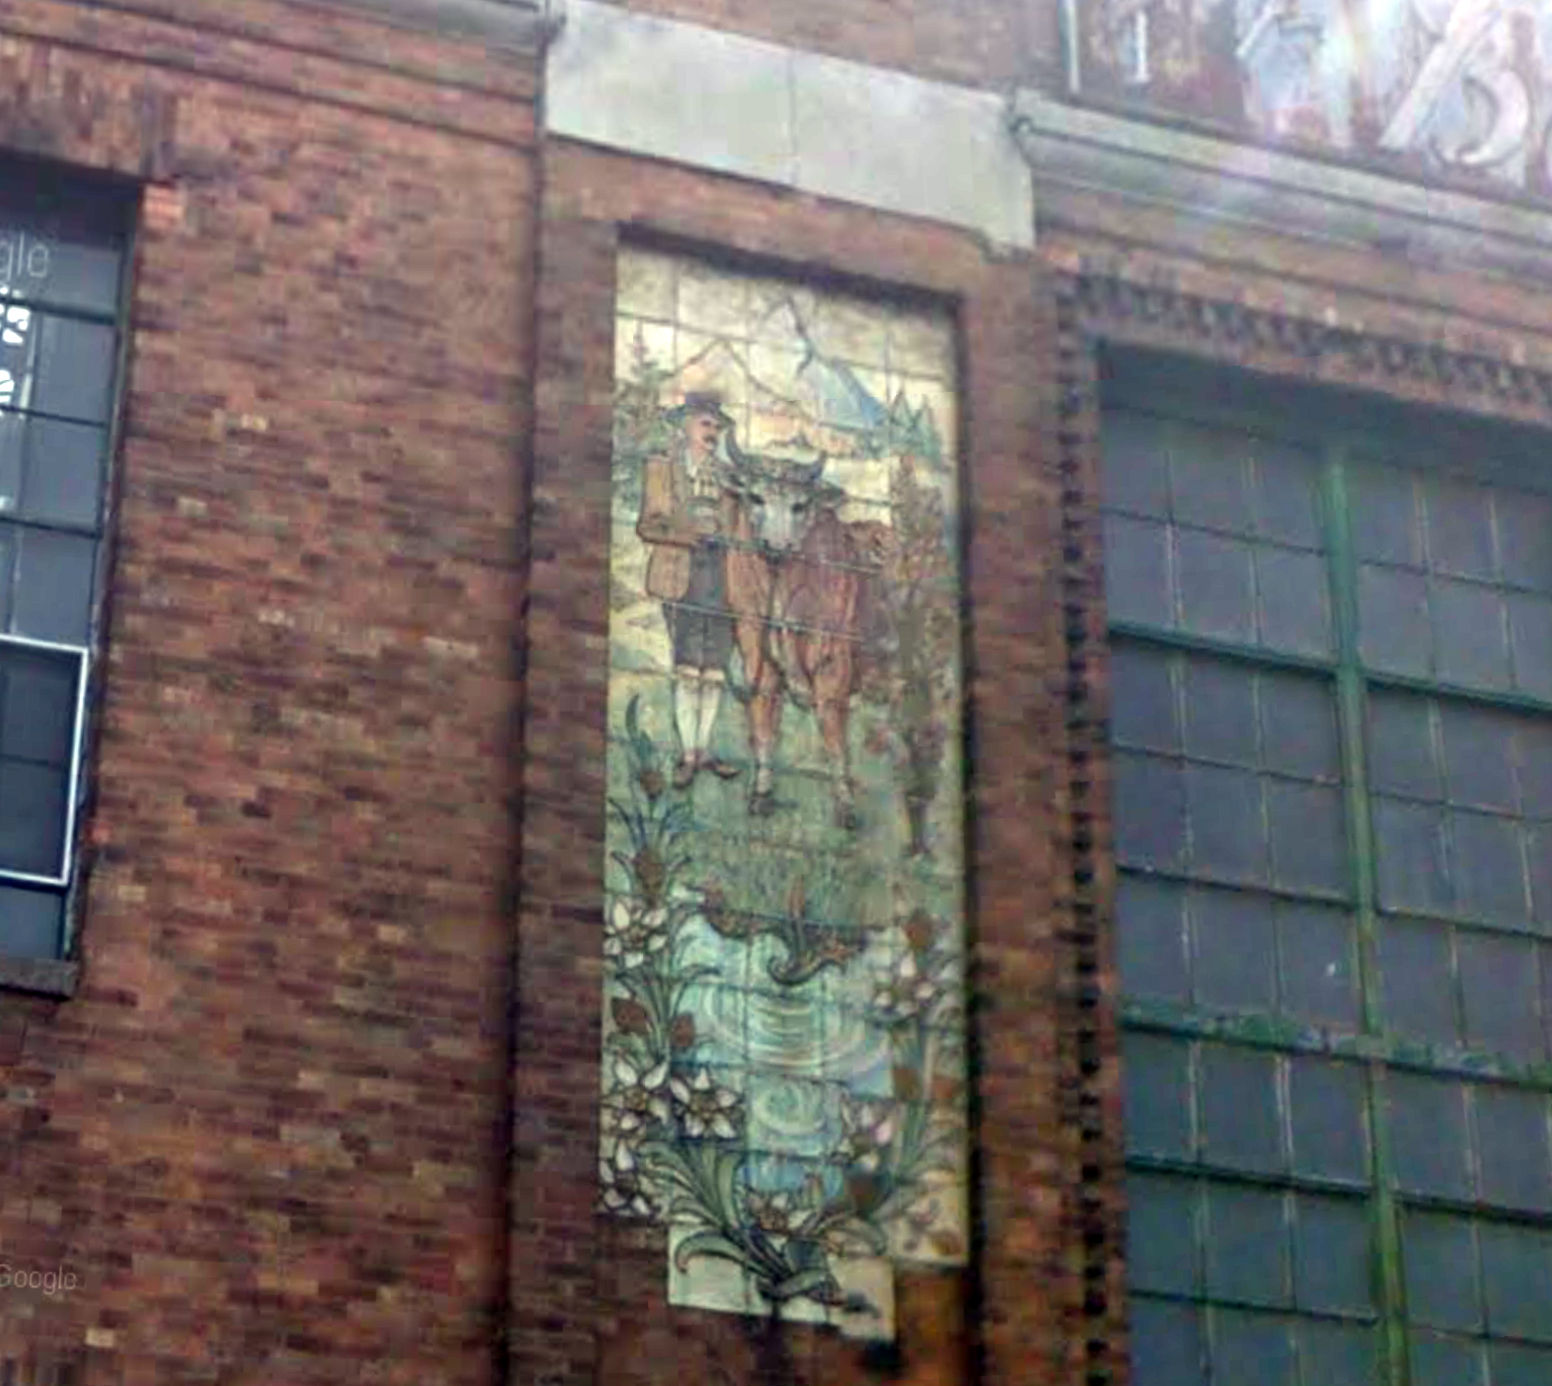 Close-up of one of the mosaics at the former Empire State Dairy Company complex in East New York, September 2015. Via Google Maps